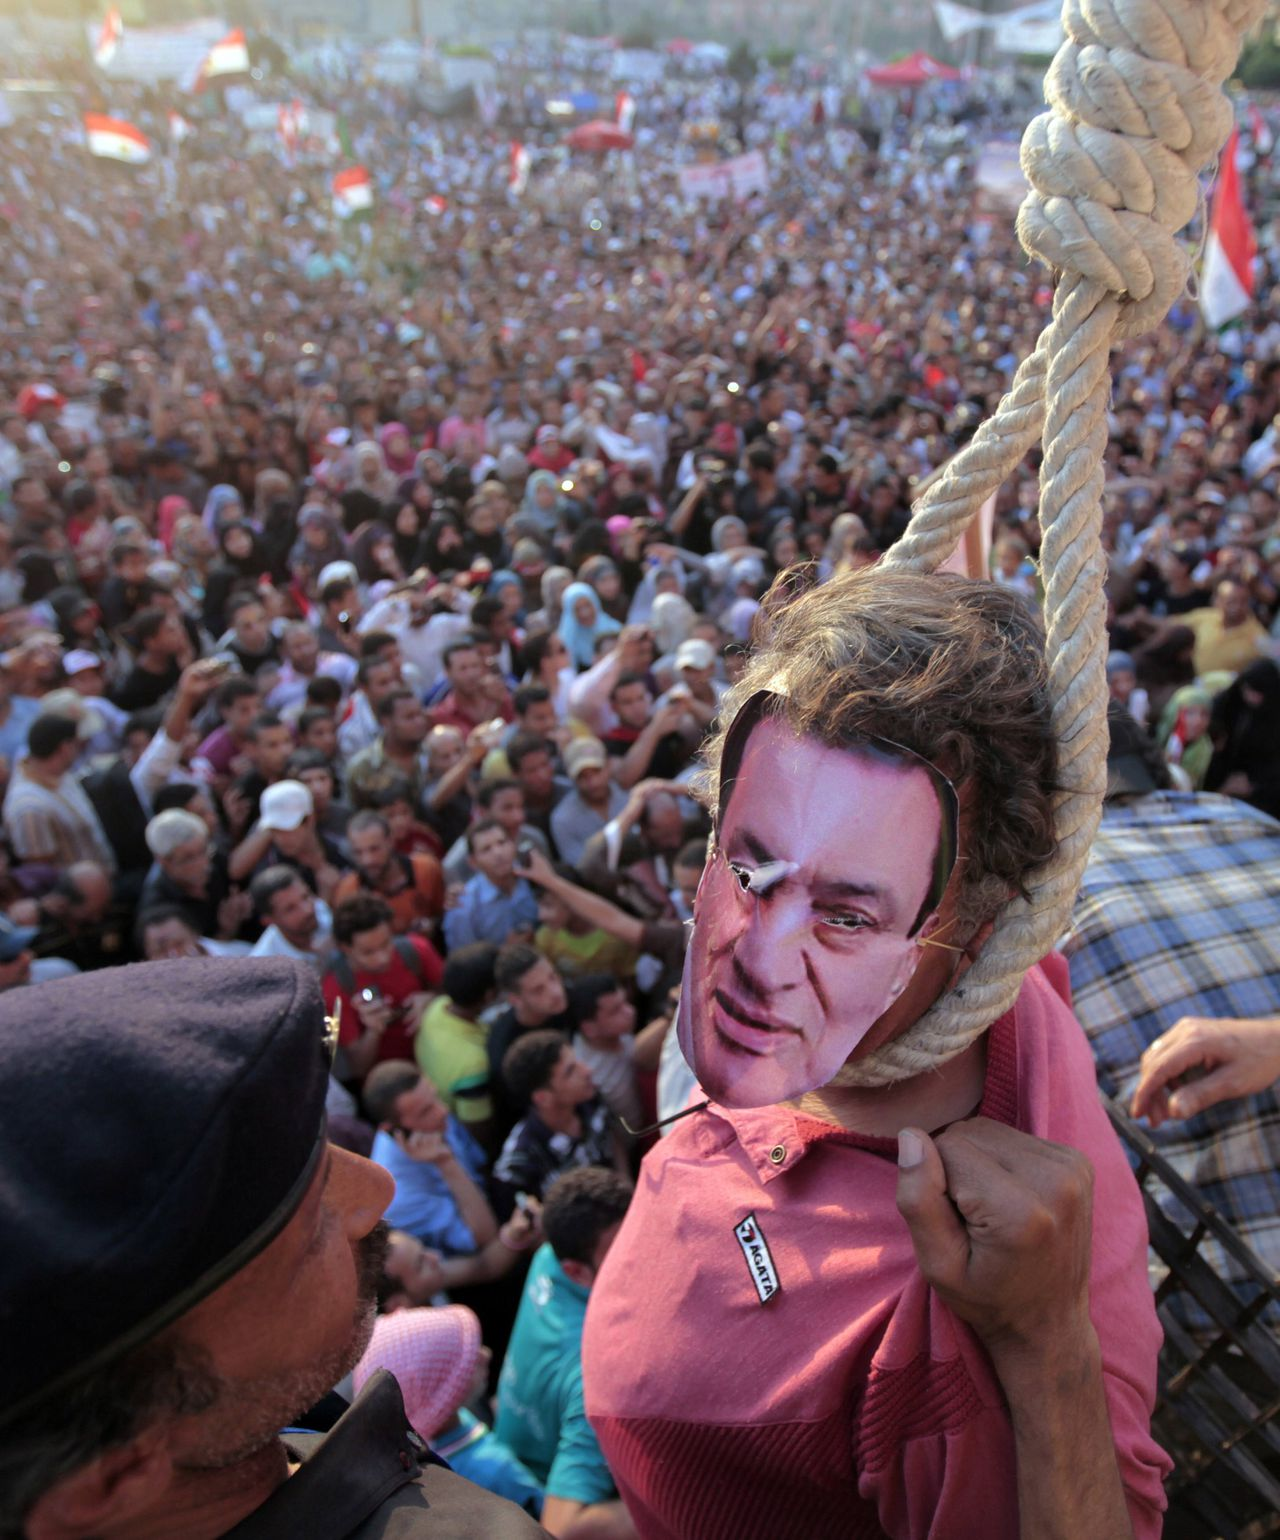 A protester acting as deposed leader Hosni Mubarak is pictured with a noose around his neck during a mock trial at Tahrir square in Cairo June 8, 2012. Hundreds of activists gathered in Cairo's Tahrir Square on Friday to demonstrate against presidential candidate Ahmed Shafik ahead of a run-off vote, saying they did not want to be ruled by another former military man. REUTERS/Mohamed Abd El Ghany (EGYPT - Tags: CIVIL UNREST POLITICS ELECTIONS)